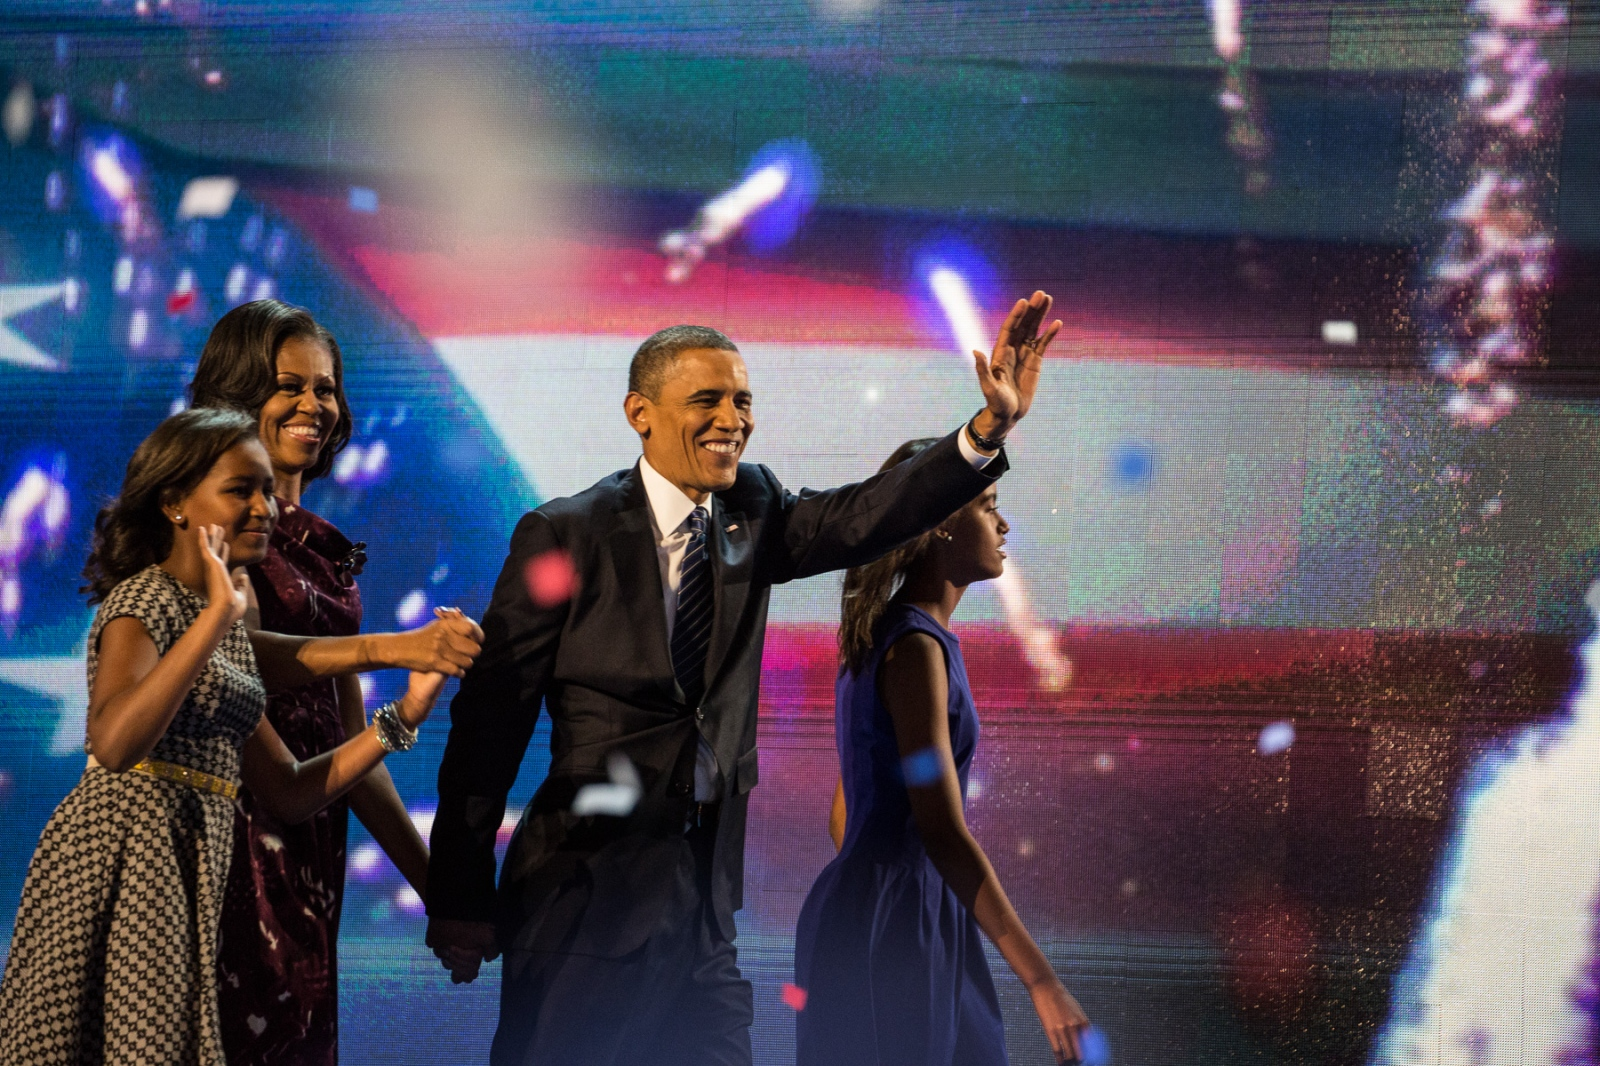 Sasha, First Lady Michelle Obama, President Barack Obama and Malia wave to the crowd at the 2012 Democratic National Convention after Obama's speech.